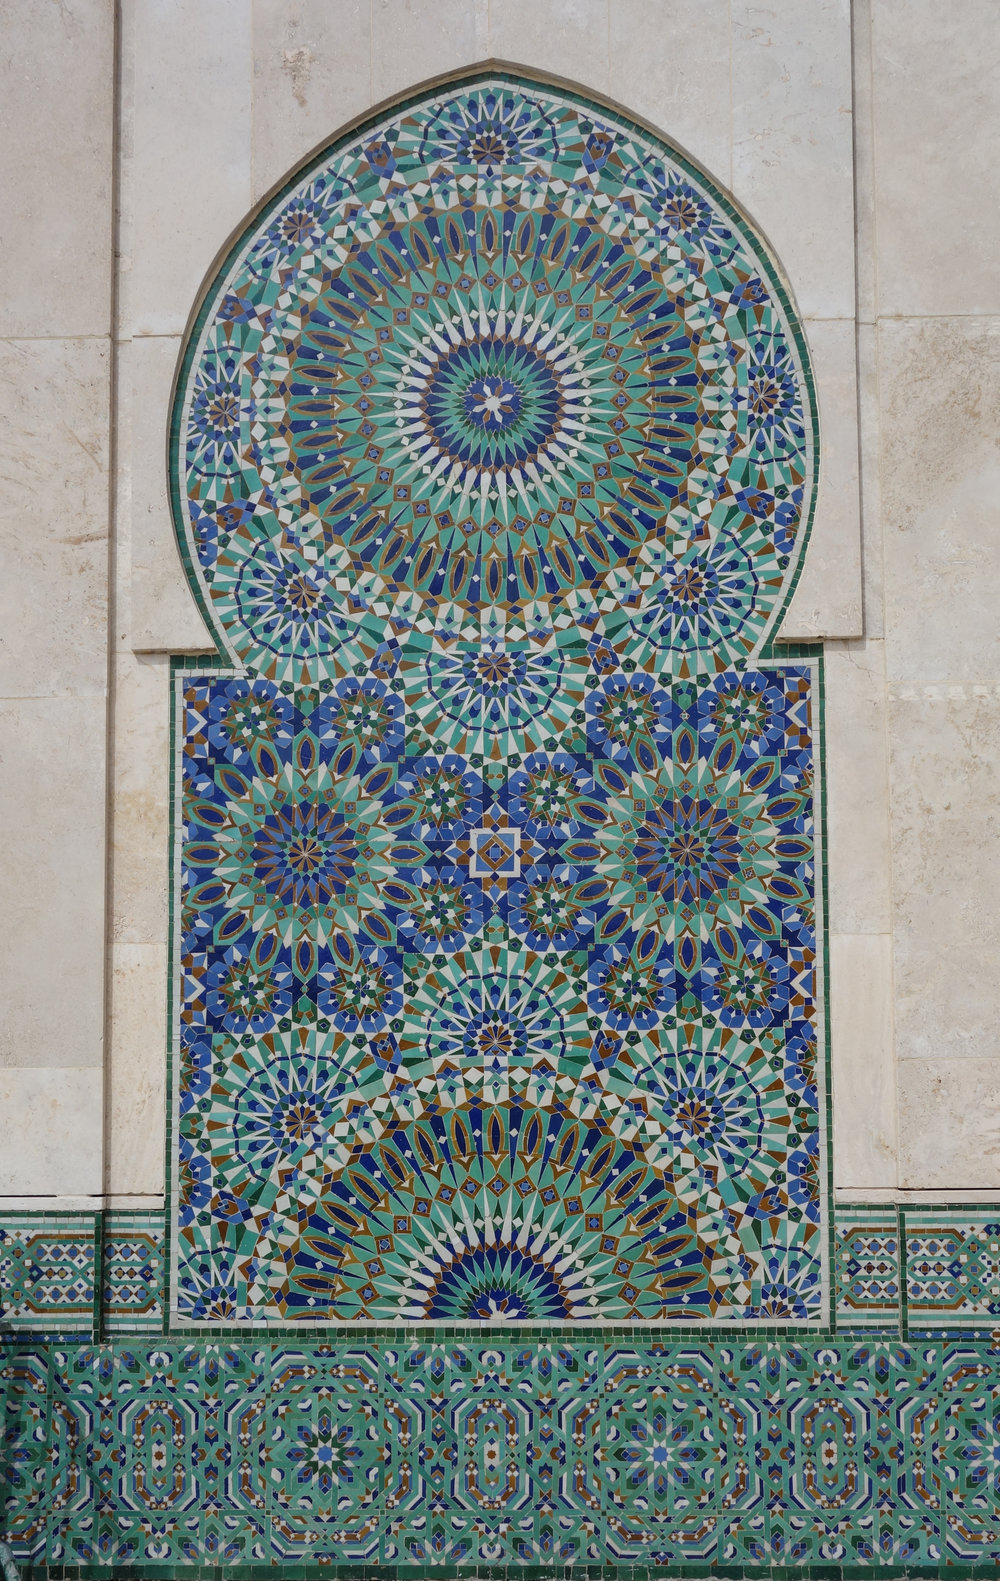 Moroccan architecture and blue-green tile work detailed in Casablanca.